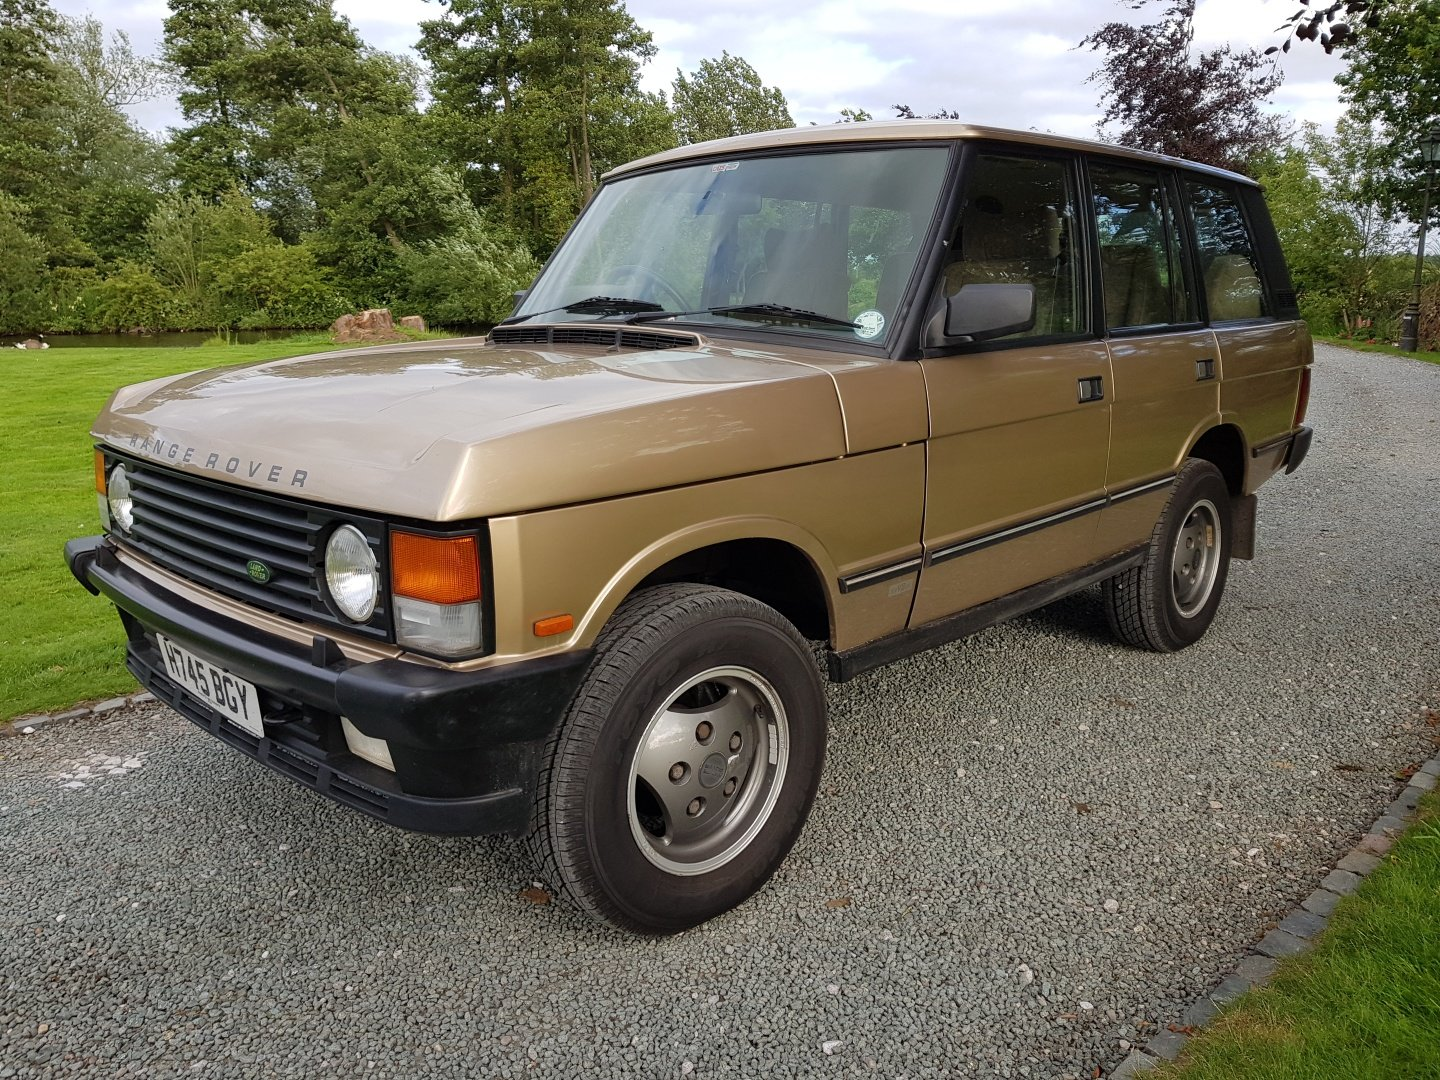 1991 Range Rover Classic 3.9 SOLD (picture 2 of 6)